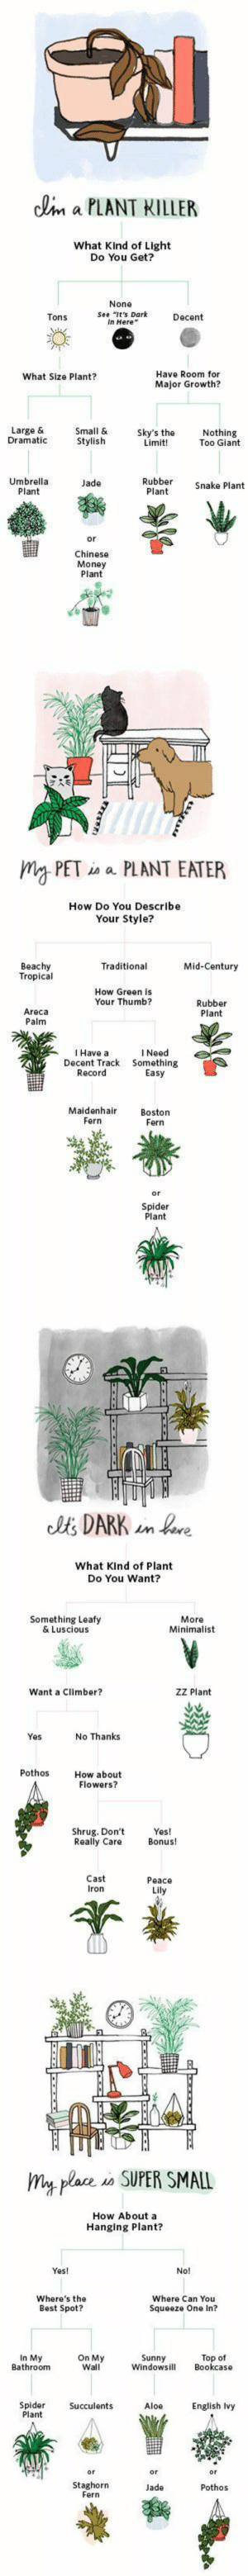 Funny, Money, and Spider: clim a PLANT KILLER  What Kind of Light  Do You Get?  None  See it's Dark  In Here  Tons  Decent  Have Room for  Major Growth  What Size Plant?  Large &  Dramatic  Small &  Stylish  Sky's the  Limit!  Nothing  Too Giant  Umbrella  Plant  Rubber Snake Plant  Plant  Jade  or  Chinese  Money  Plant   久똑  mgPETa a PLANT EATER  How Do You Describe  Your Style?  Beachy  Tropical  Traditional  Mid-Century  How Green is  Your Thumb?  Rubber  Plant  Areca  Palm  I Have a  l Need  Decent Track Something  Record  Easy  Maidenhair  Fern  Boston  Fern  Spider  Plant   What Kind of Plant  Do You Want?  Something Leafy  & Luscious  More  Minimalist  Want a Climber?  ZZ Plant  Yes  No Thanks  Pothos  How about  Flowers?  Shrug. Don't Yes!  Really Care Bonus!  Cast  Iron  Peace  Lily   my plare o SUPER SMALL  How About a  Hanging Plant?  Yes!  No!  Where's the  Best Spot?  Where Can You  Squeeze One In?  . MOn My windowsil  Sunny  Windowsi Bookcase  Top of  Bathroom  Wall  Spider Succulents Aloe English Ivy  Plant  Pothos  Staghorn  Fern  Jade herbwicc:  plantinghuman:  Funny way to find out which plant you might like to buy. Source:  apartmenttherapy.com  FOR MY FOLLOWERS THAT HAVE DIFFICULTY CARING FOR PLANTS AND ASK WHAT THEY SHOULD BUY, THIS IS REALLY GREAT!!